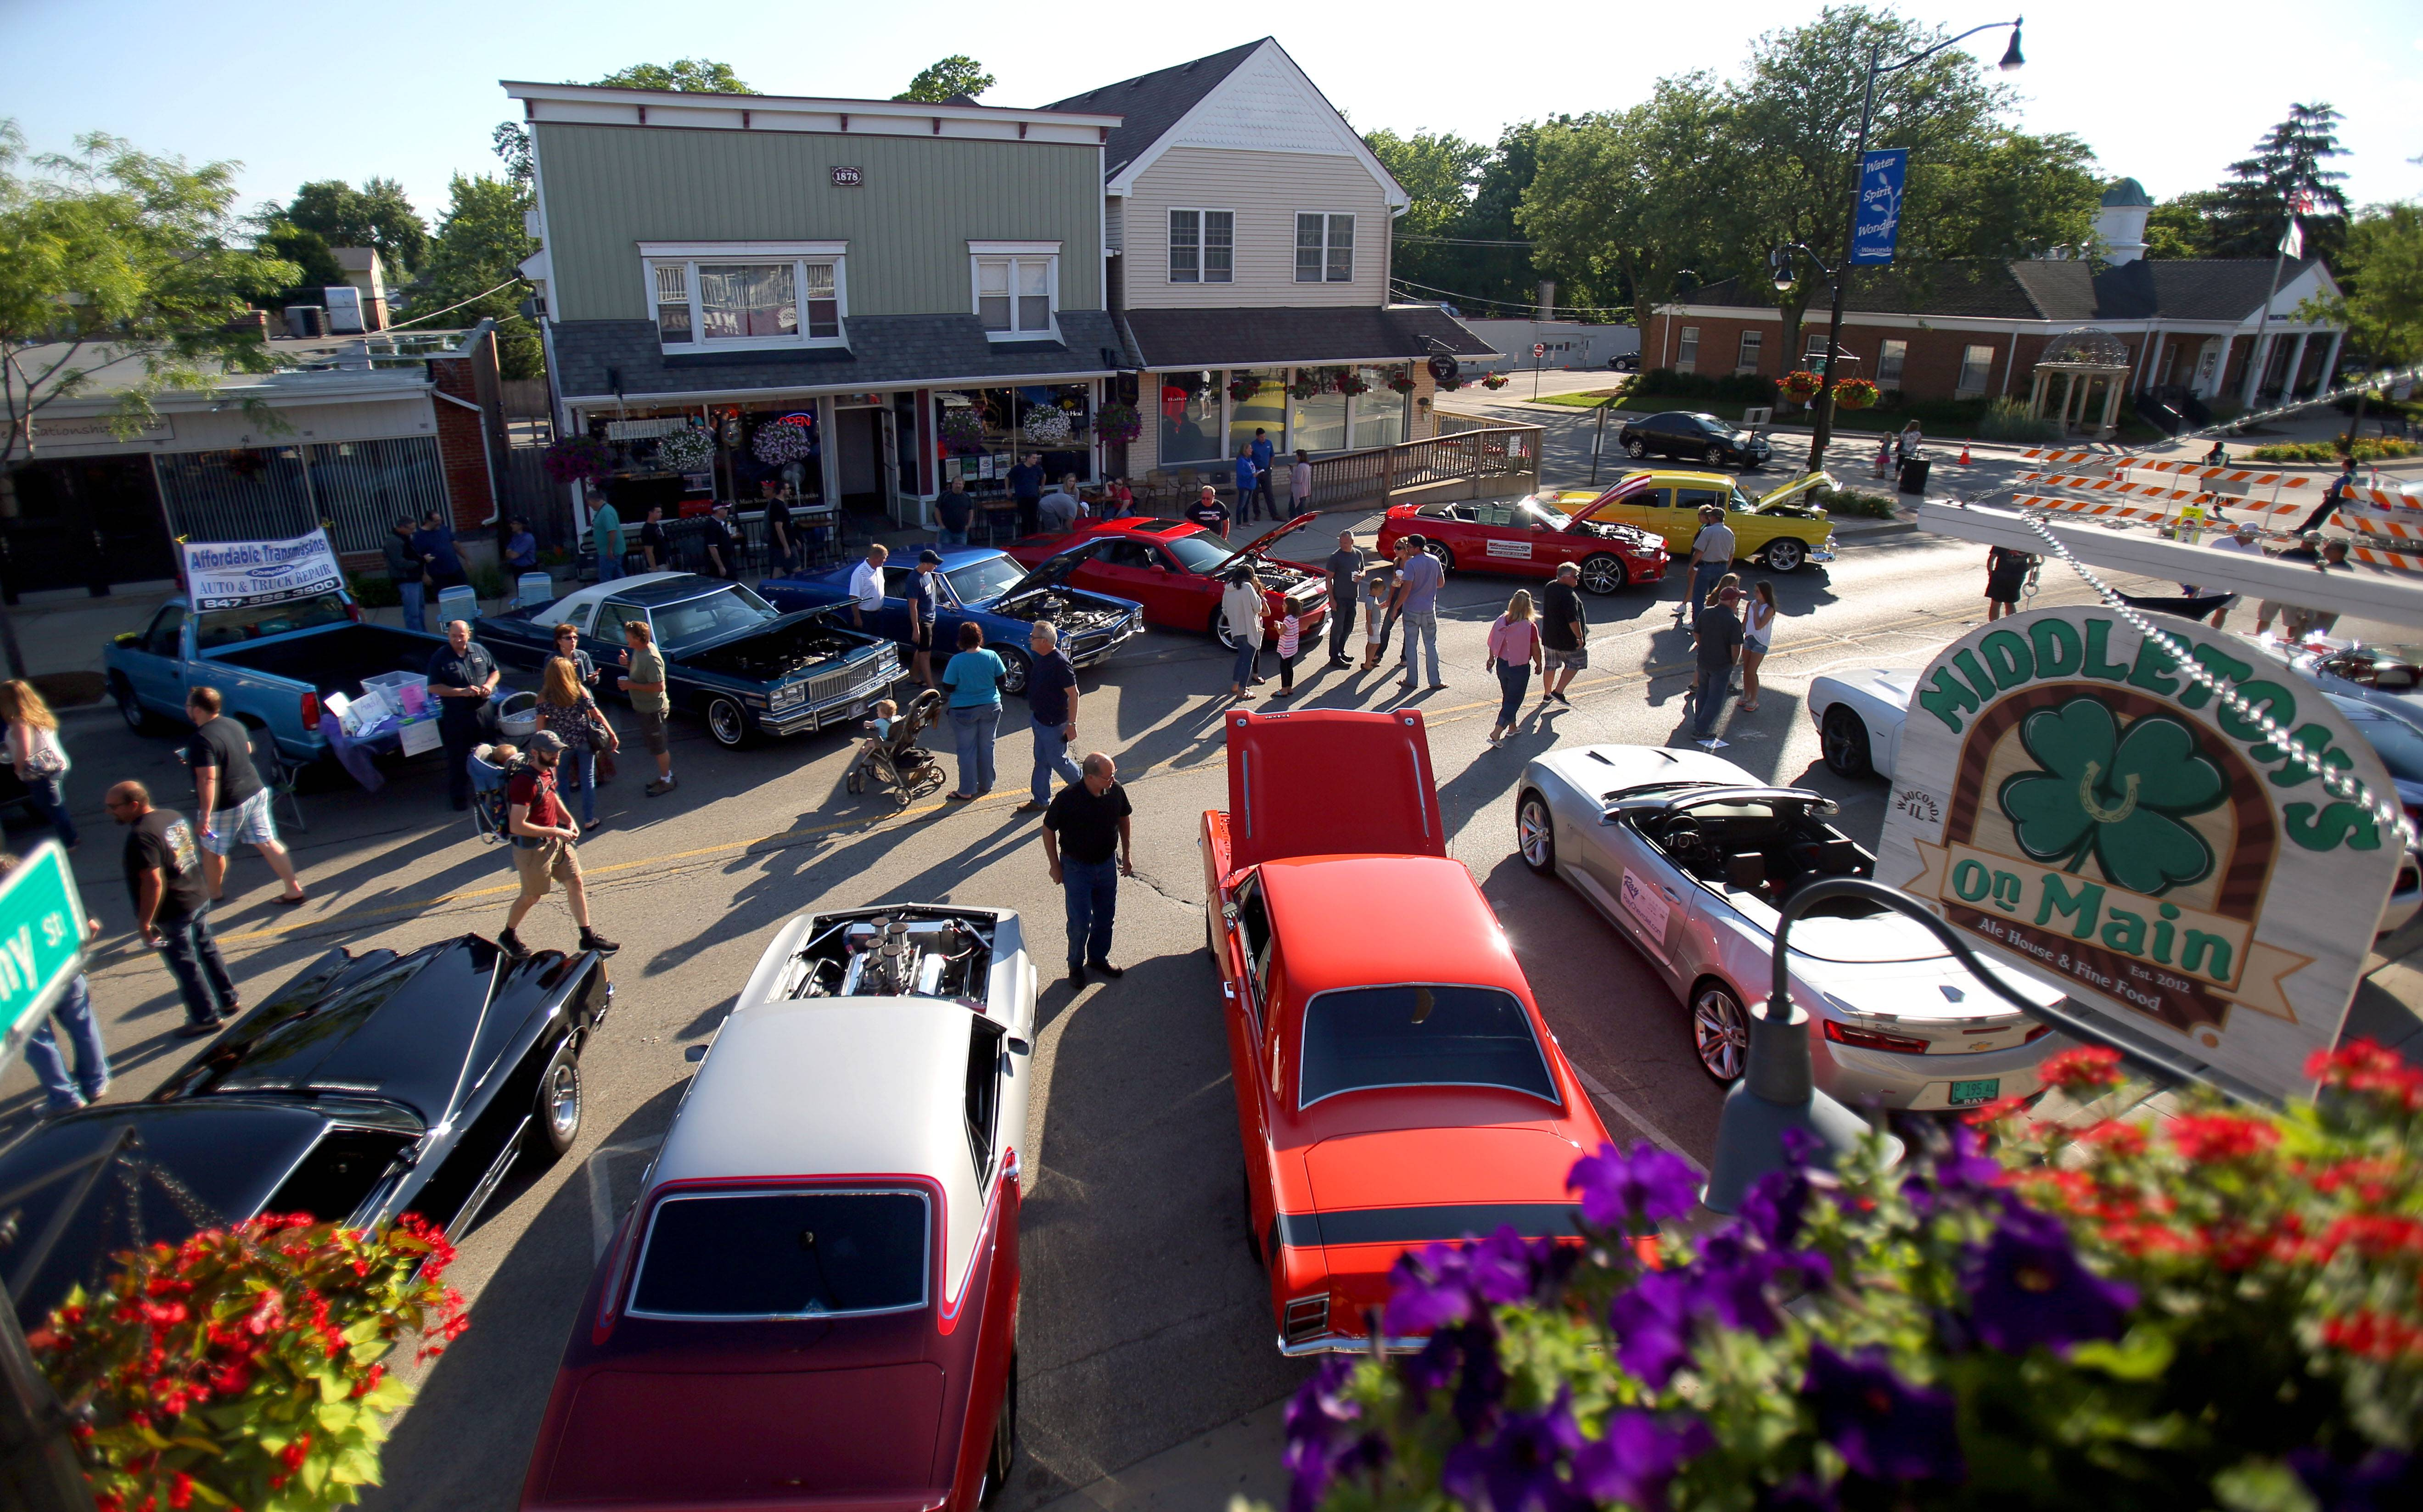 People gathered on Main Street during the annual Wauconda Cruise Nights downtown.